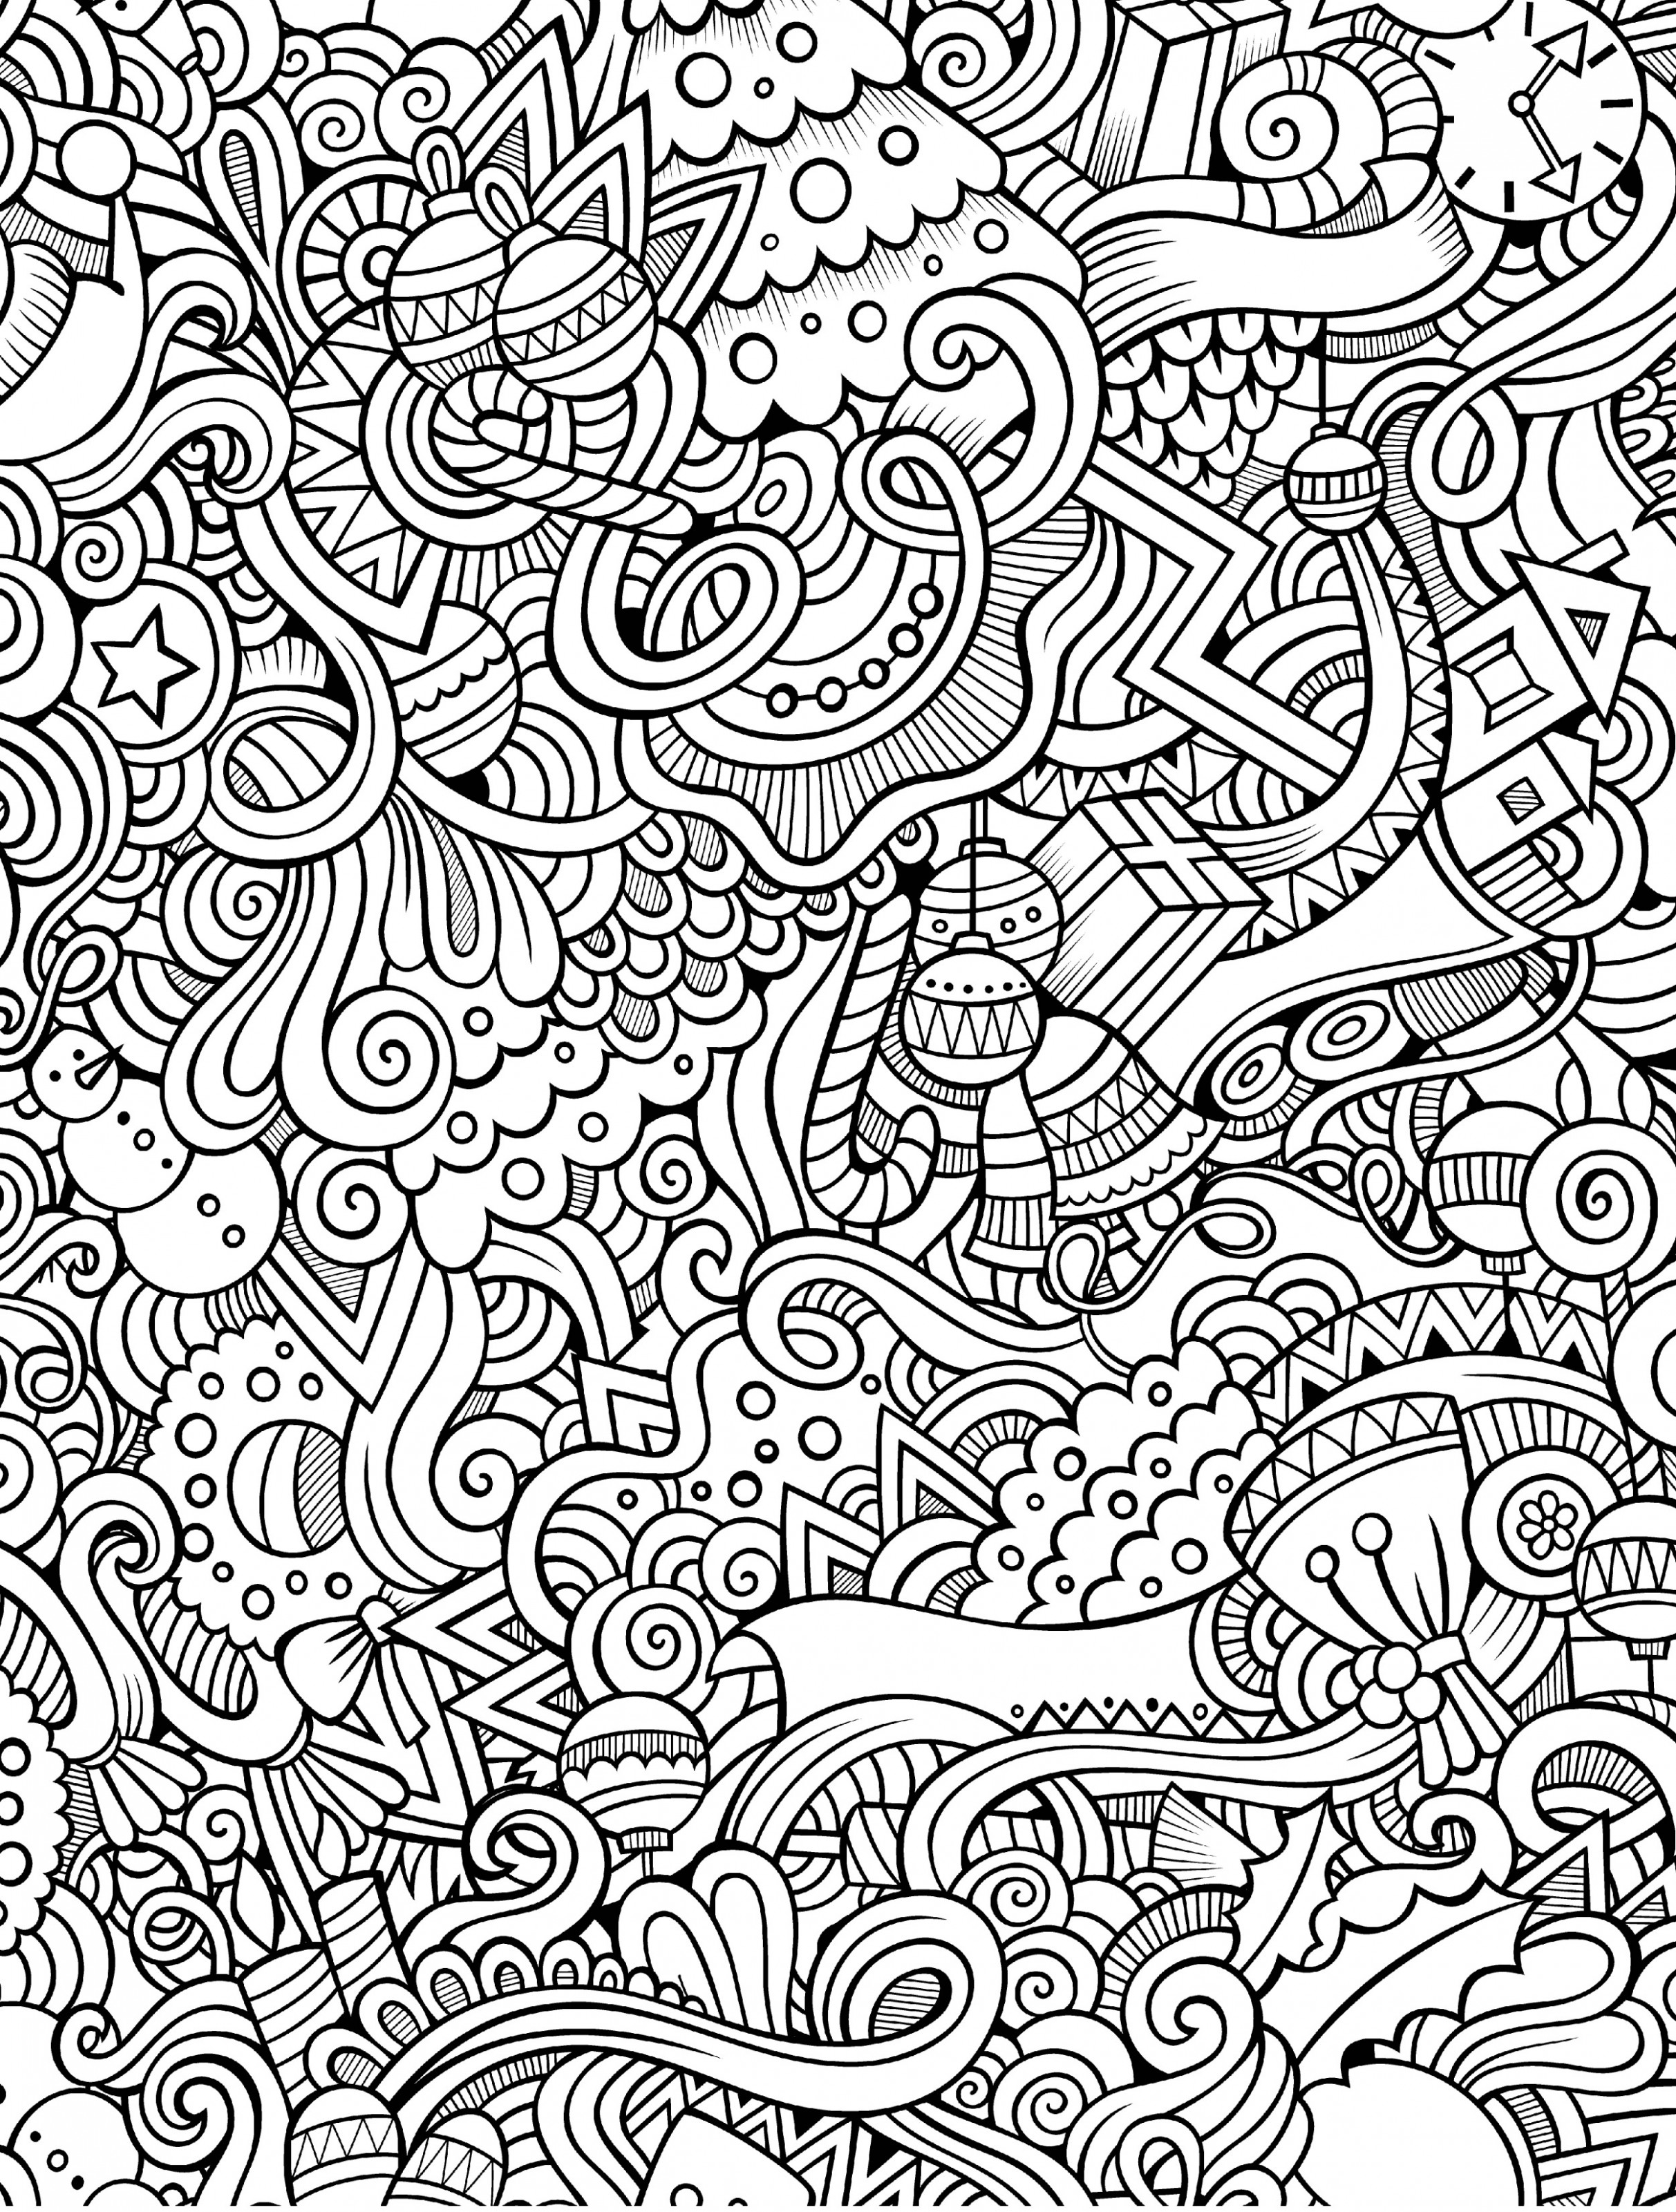 18 Free Printable Holiday Adult Coloring Pages